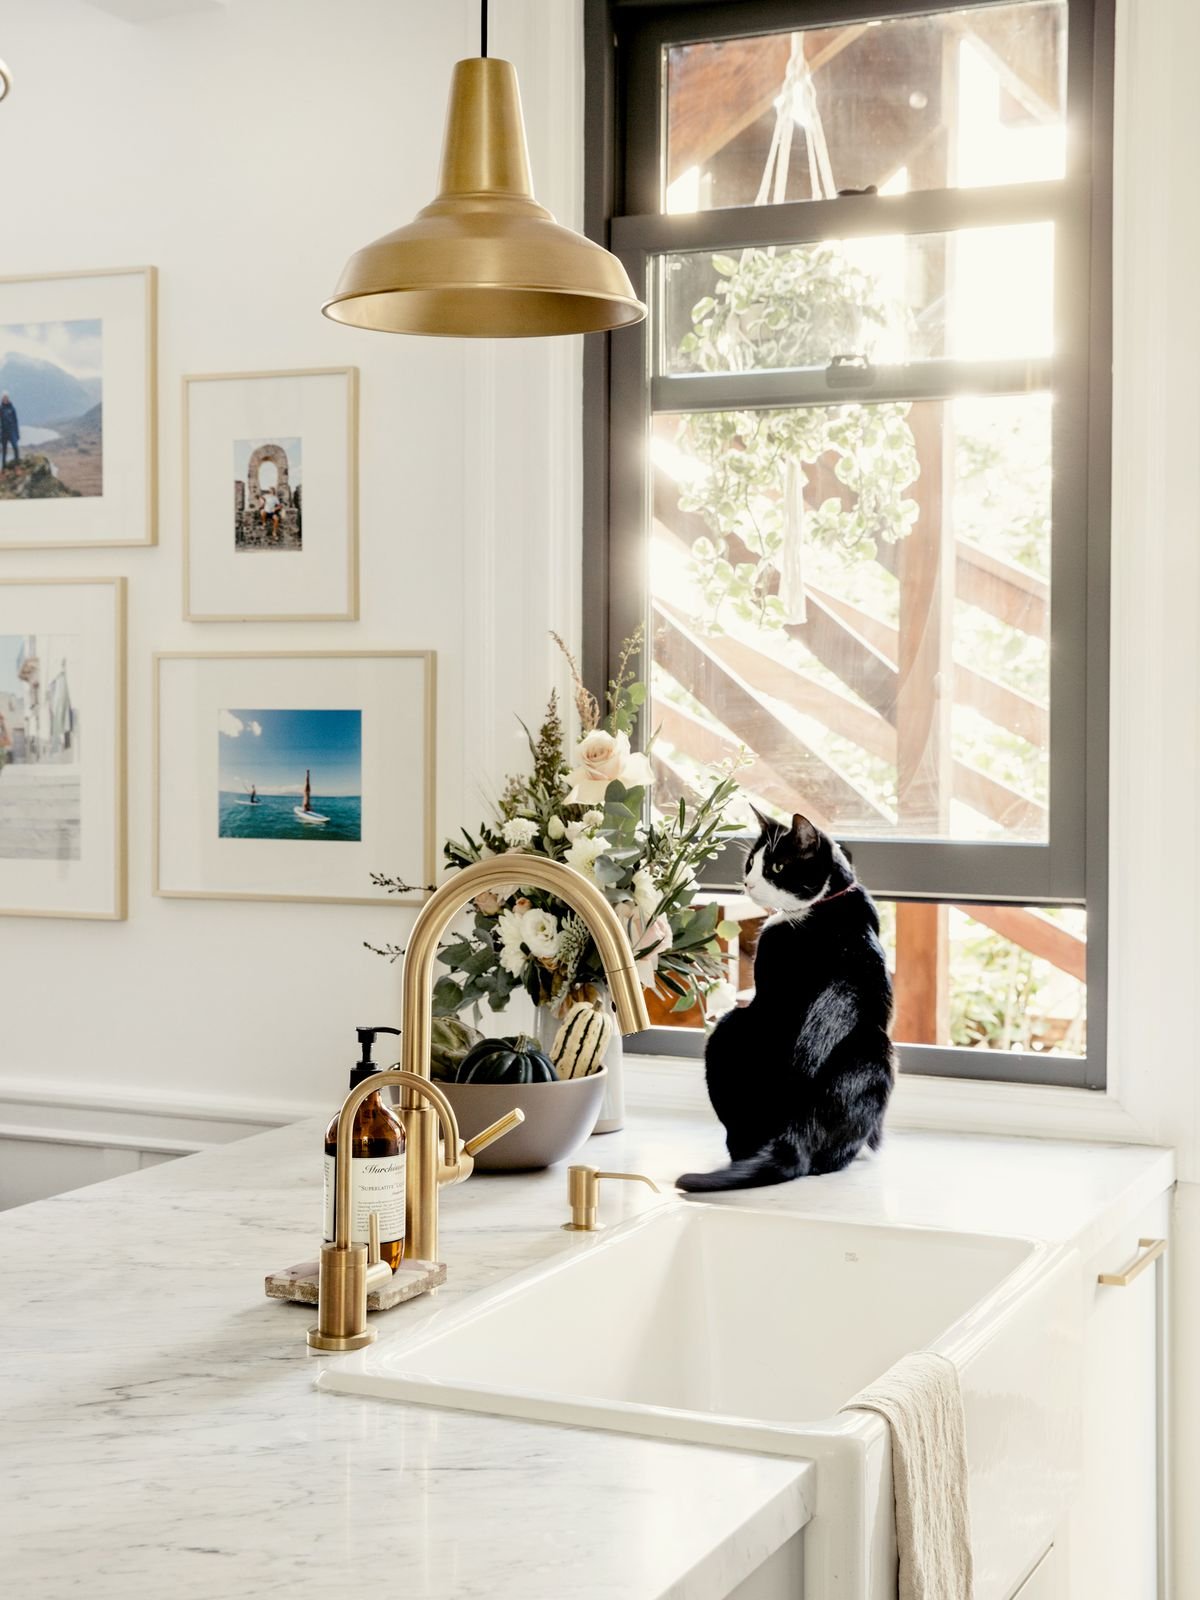 A kitchen island with a marble top and brass sink fixtures. A black and white cat sits next to the sink. There is a window letting in light. There are multiple works of art hanging on the wall.